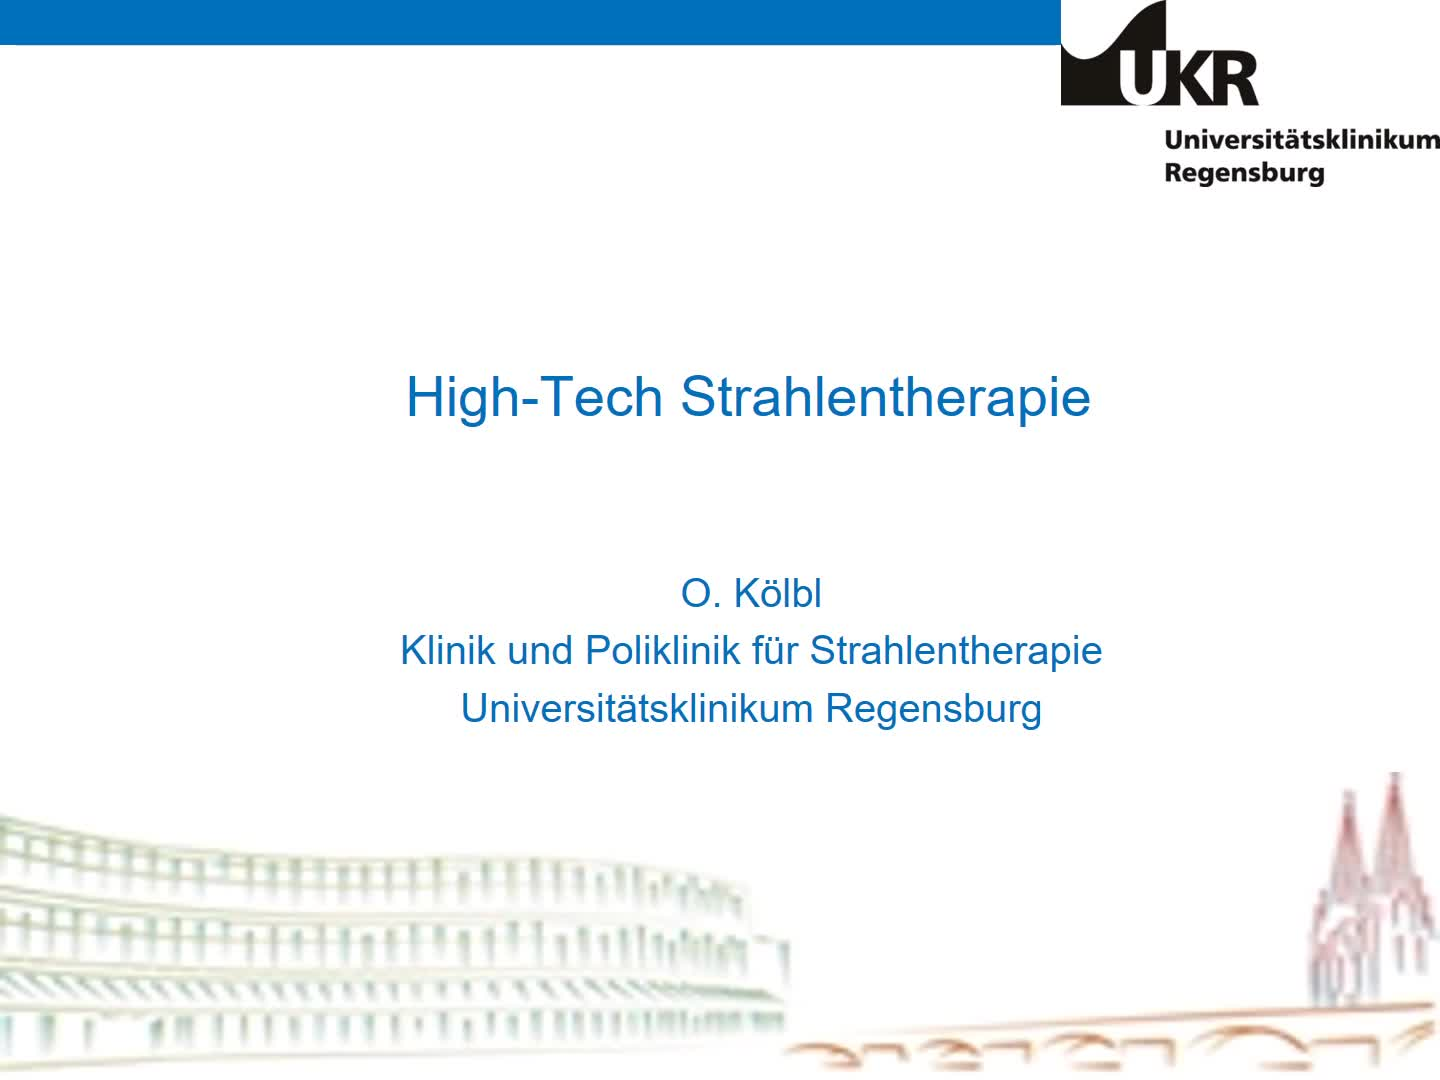 7 STT_High Tech in der Strahlentherapie_O. Koelbl